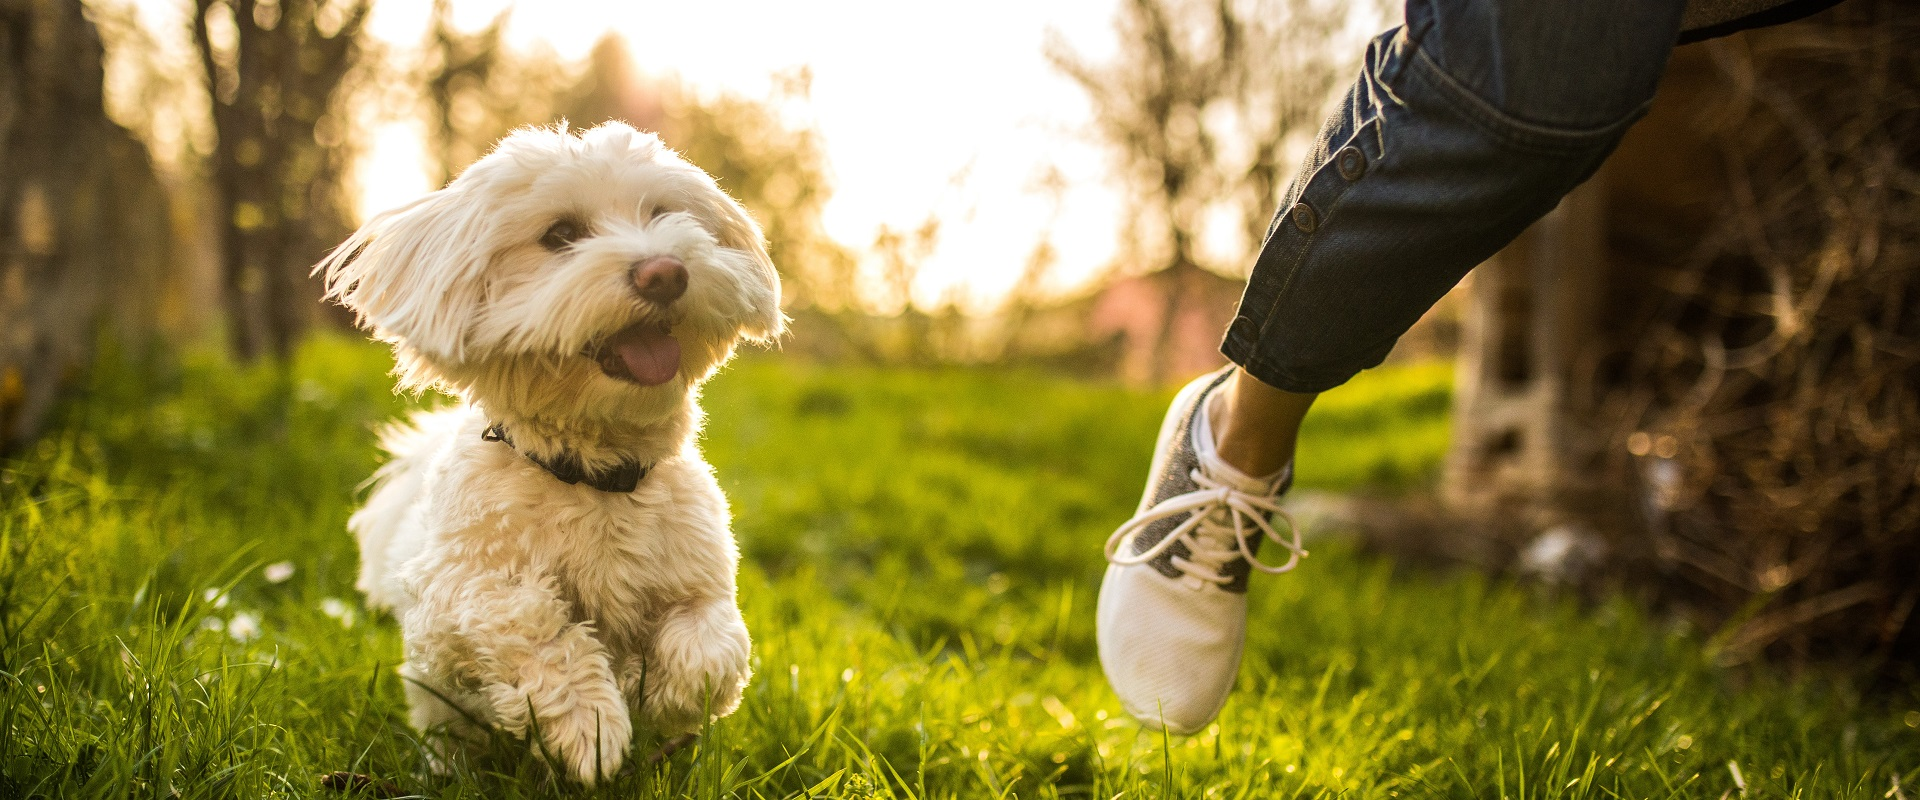 Take your pampered pooch on an invigorating walk through the city.